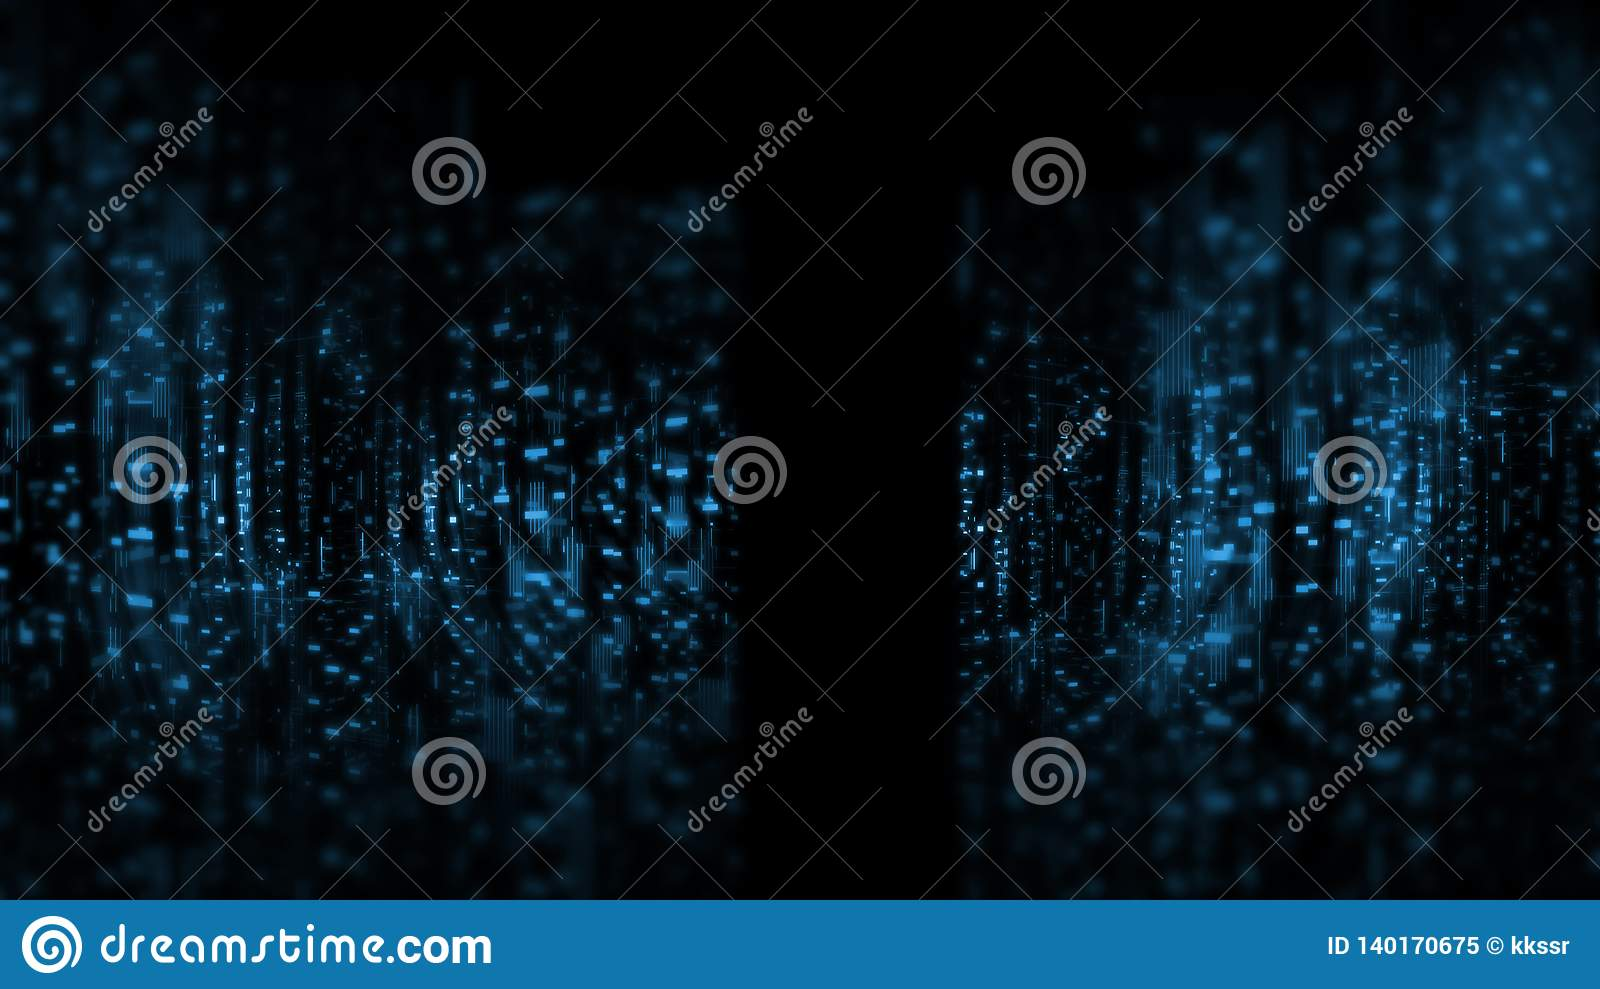 Wide screen wallpaper. Computer circuit dots and blur binary data. For deep machine learning, crypto currency, artificial intelligence product uses.